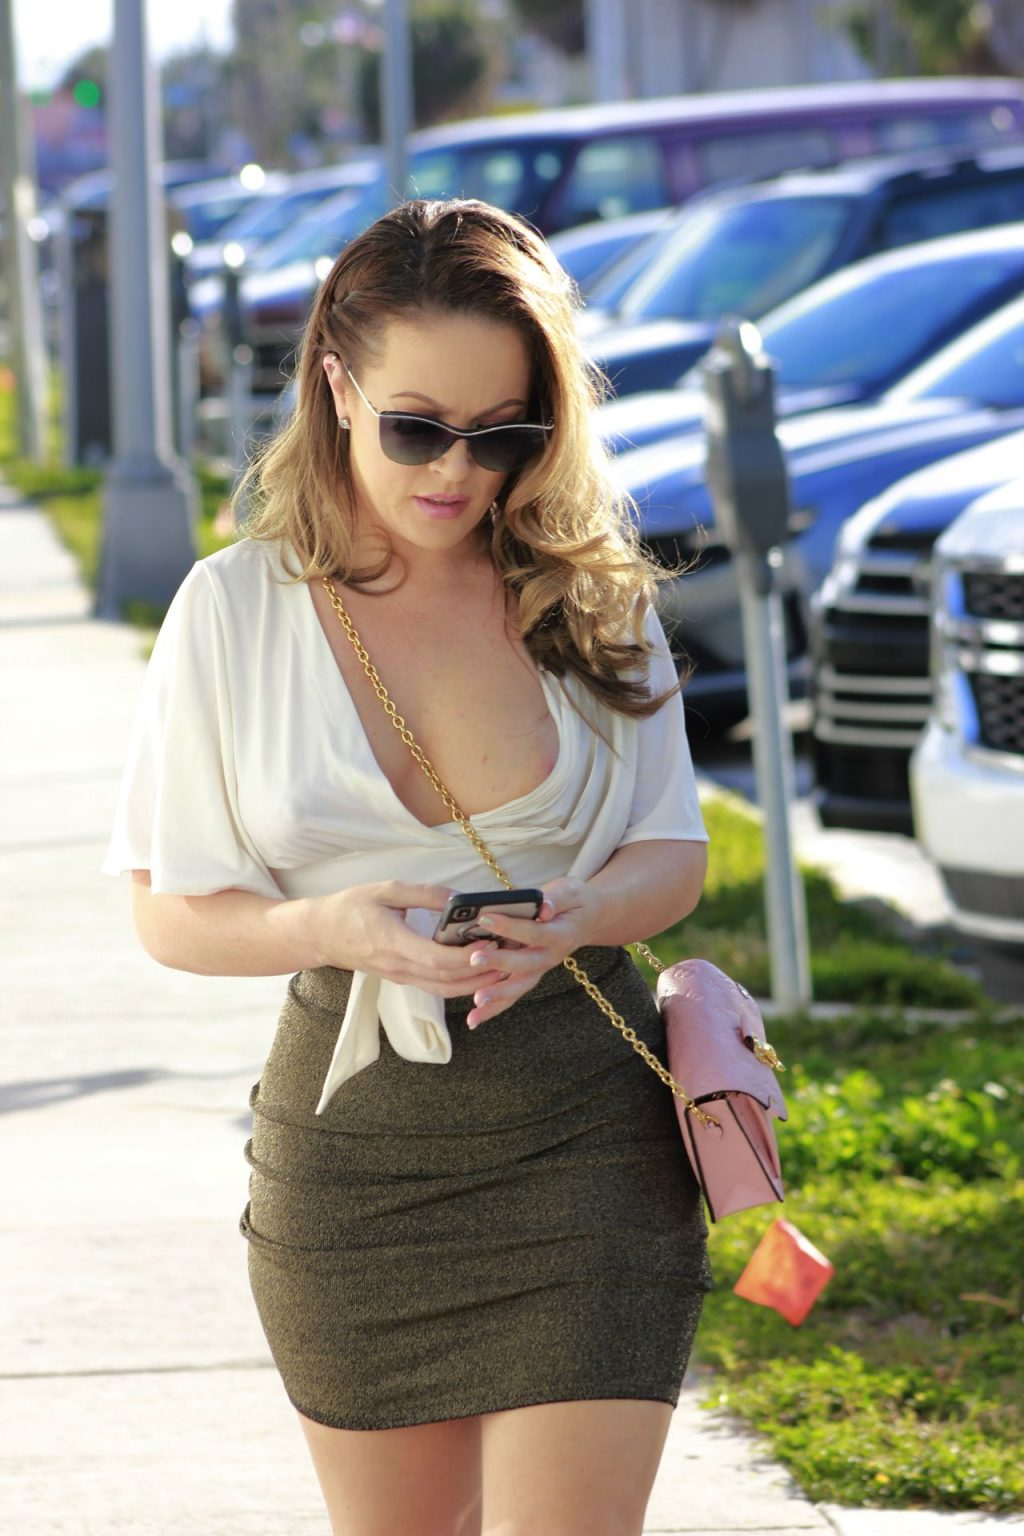 Carmen Valentina Barely Contains Her Curves Out And About In LA (11 Photos)